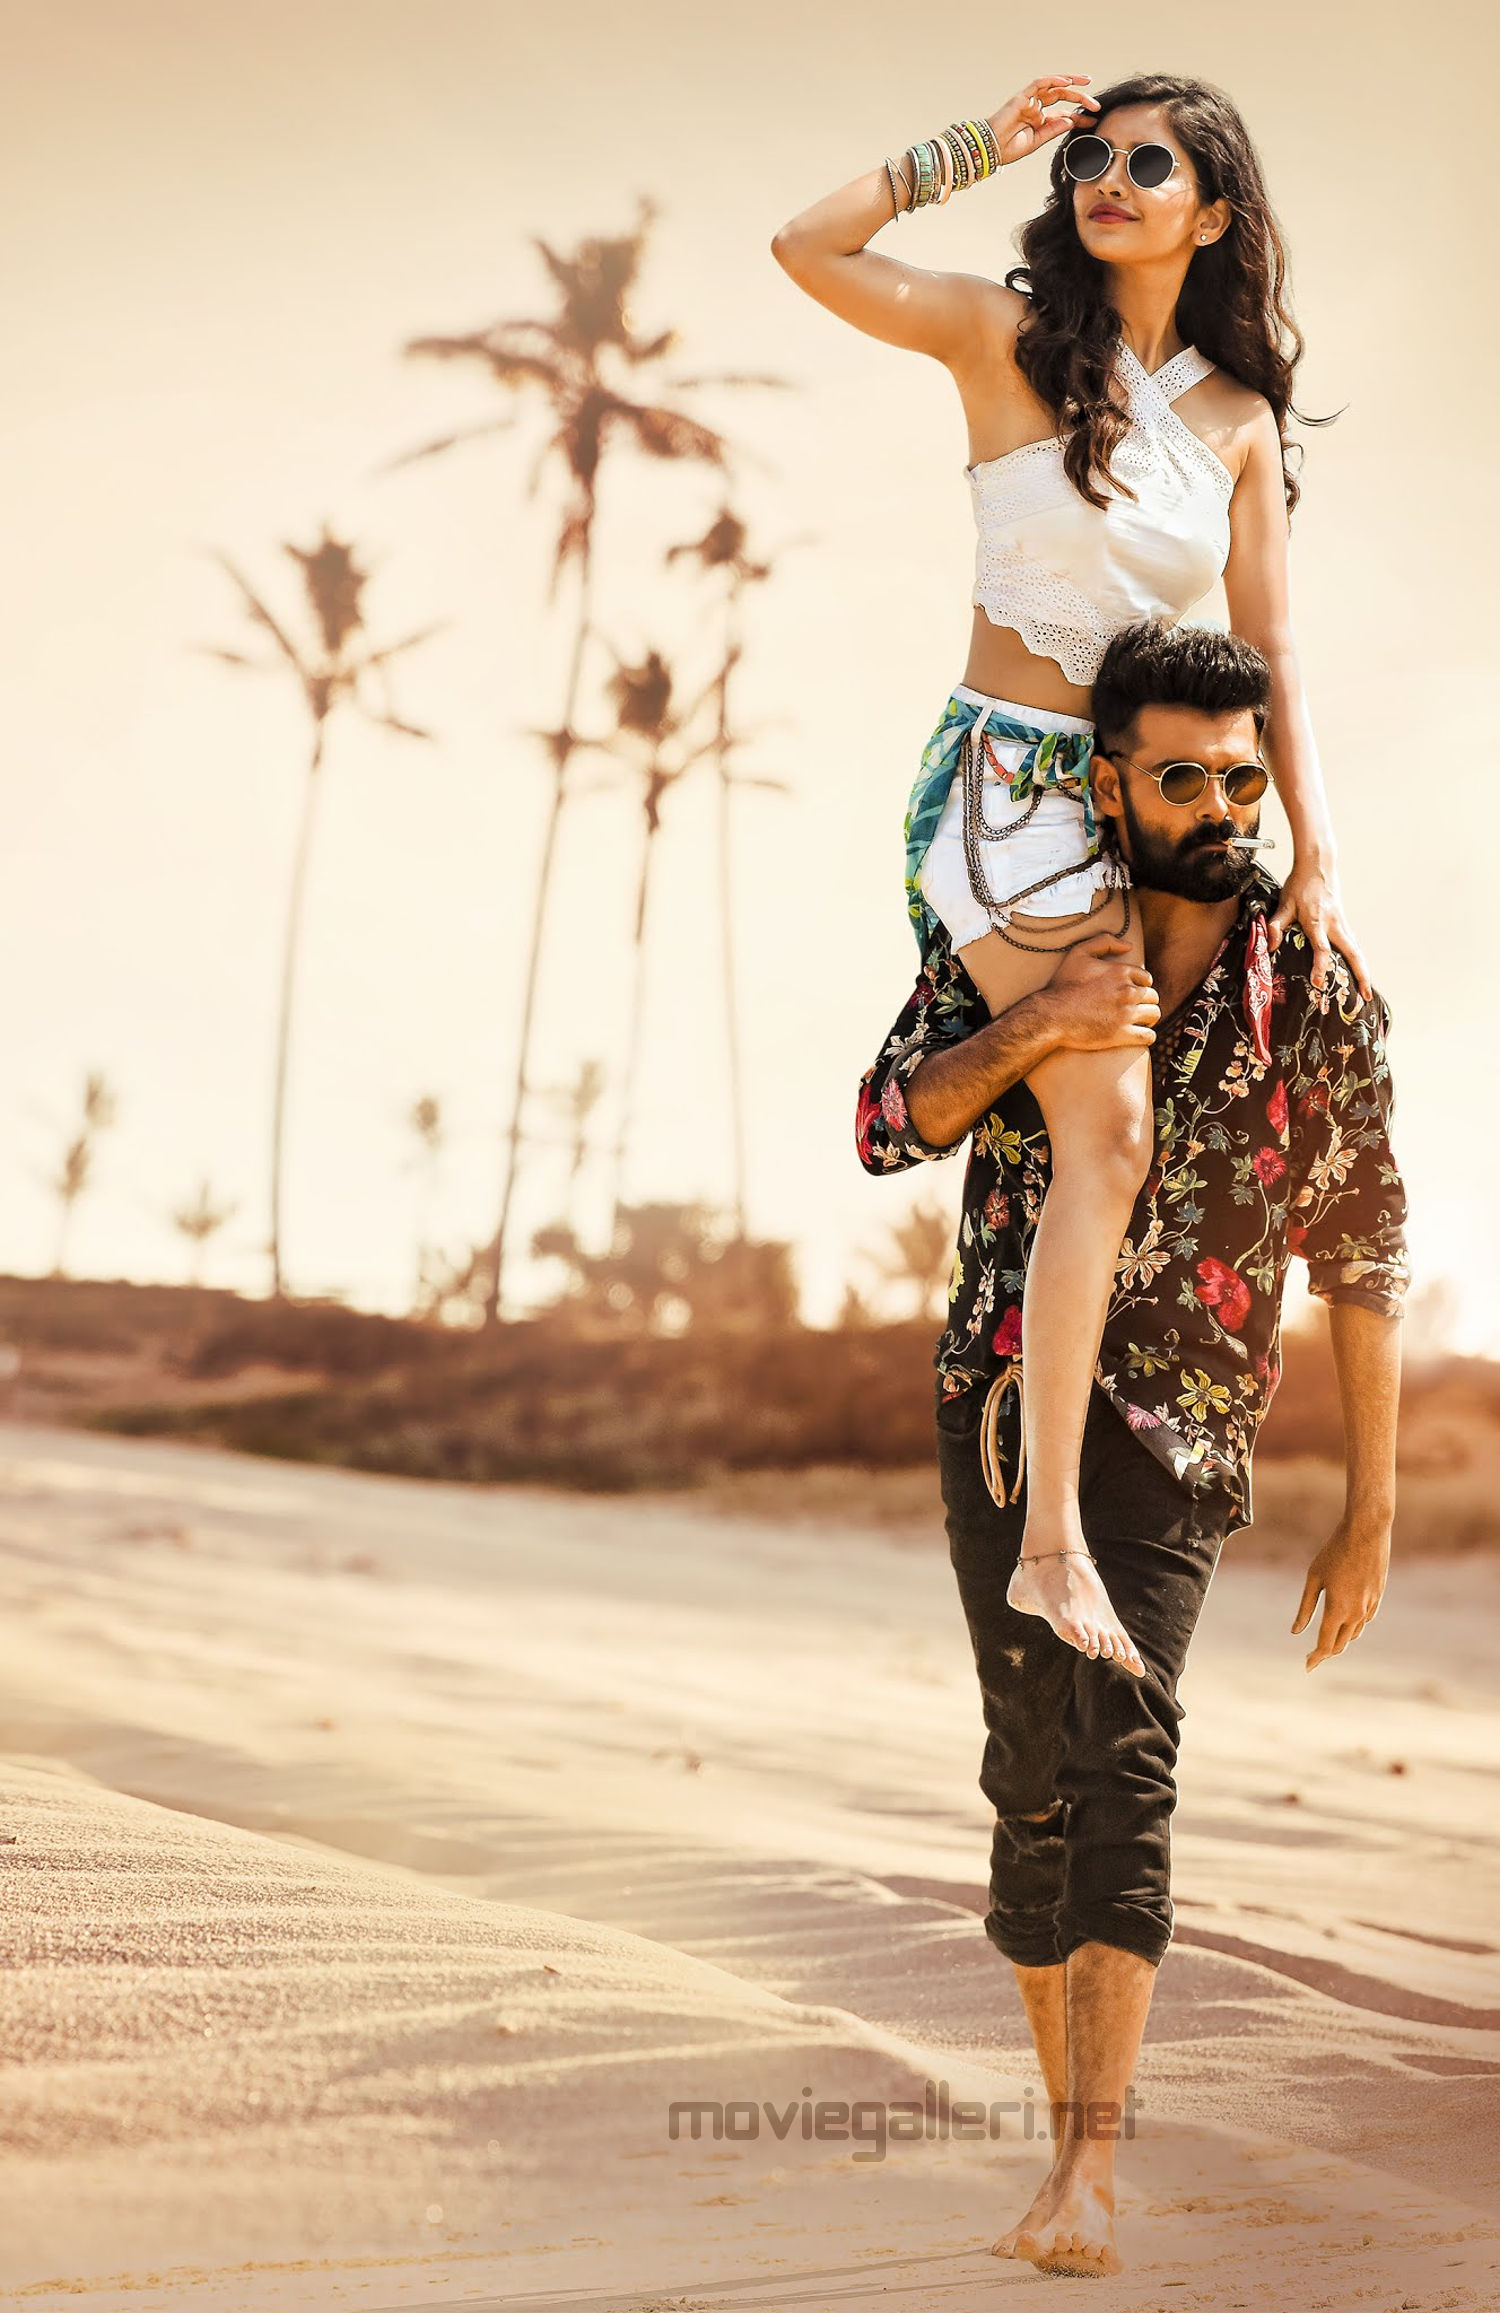 Ram Pothineni Nabha Natesh iSmart Shankar movie song shooting in Maldives